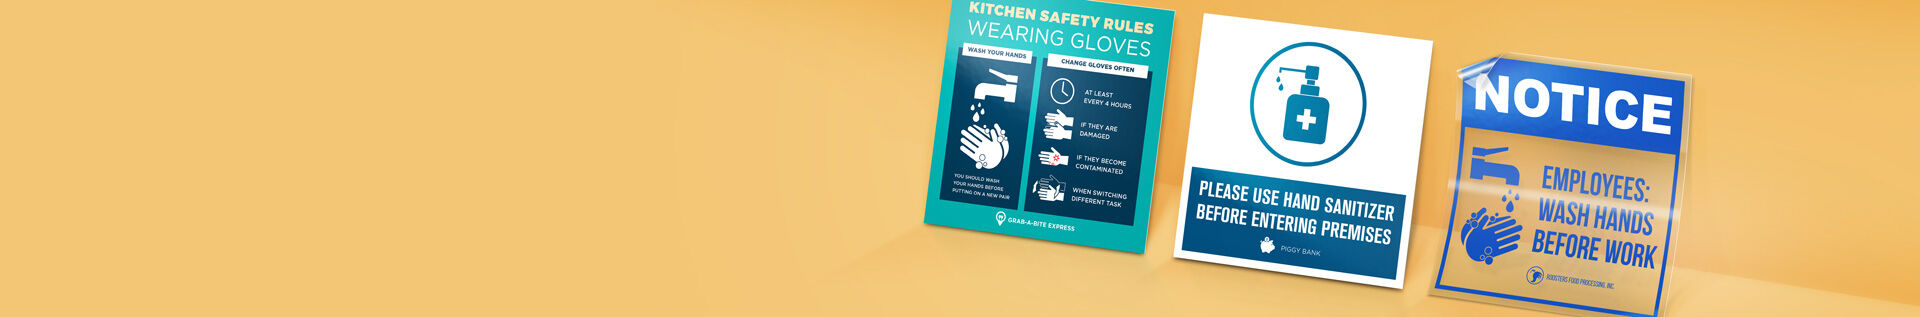 handwashing signs banner